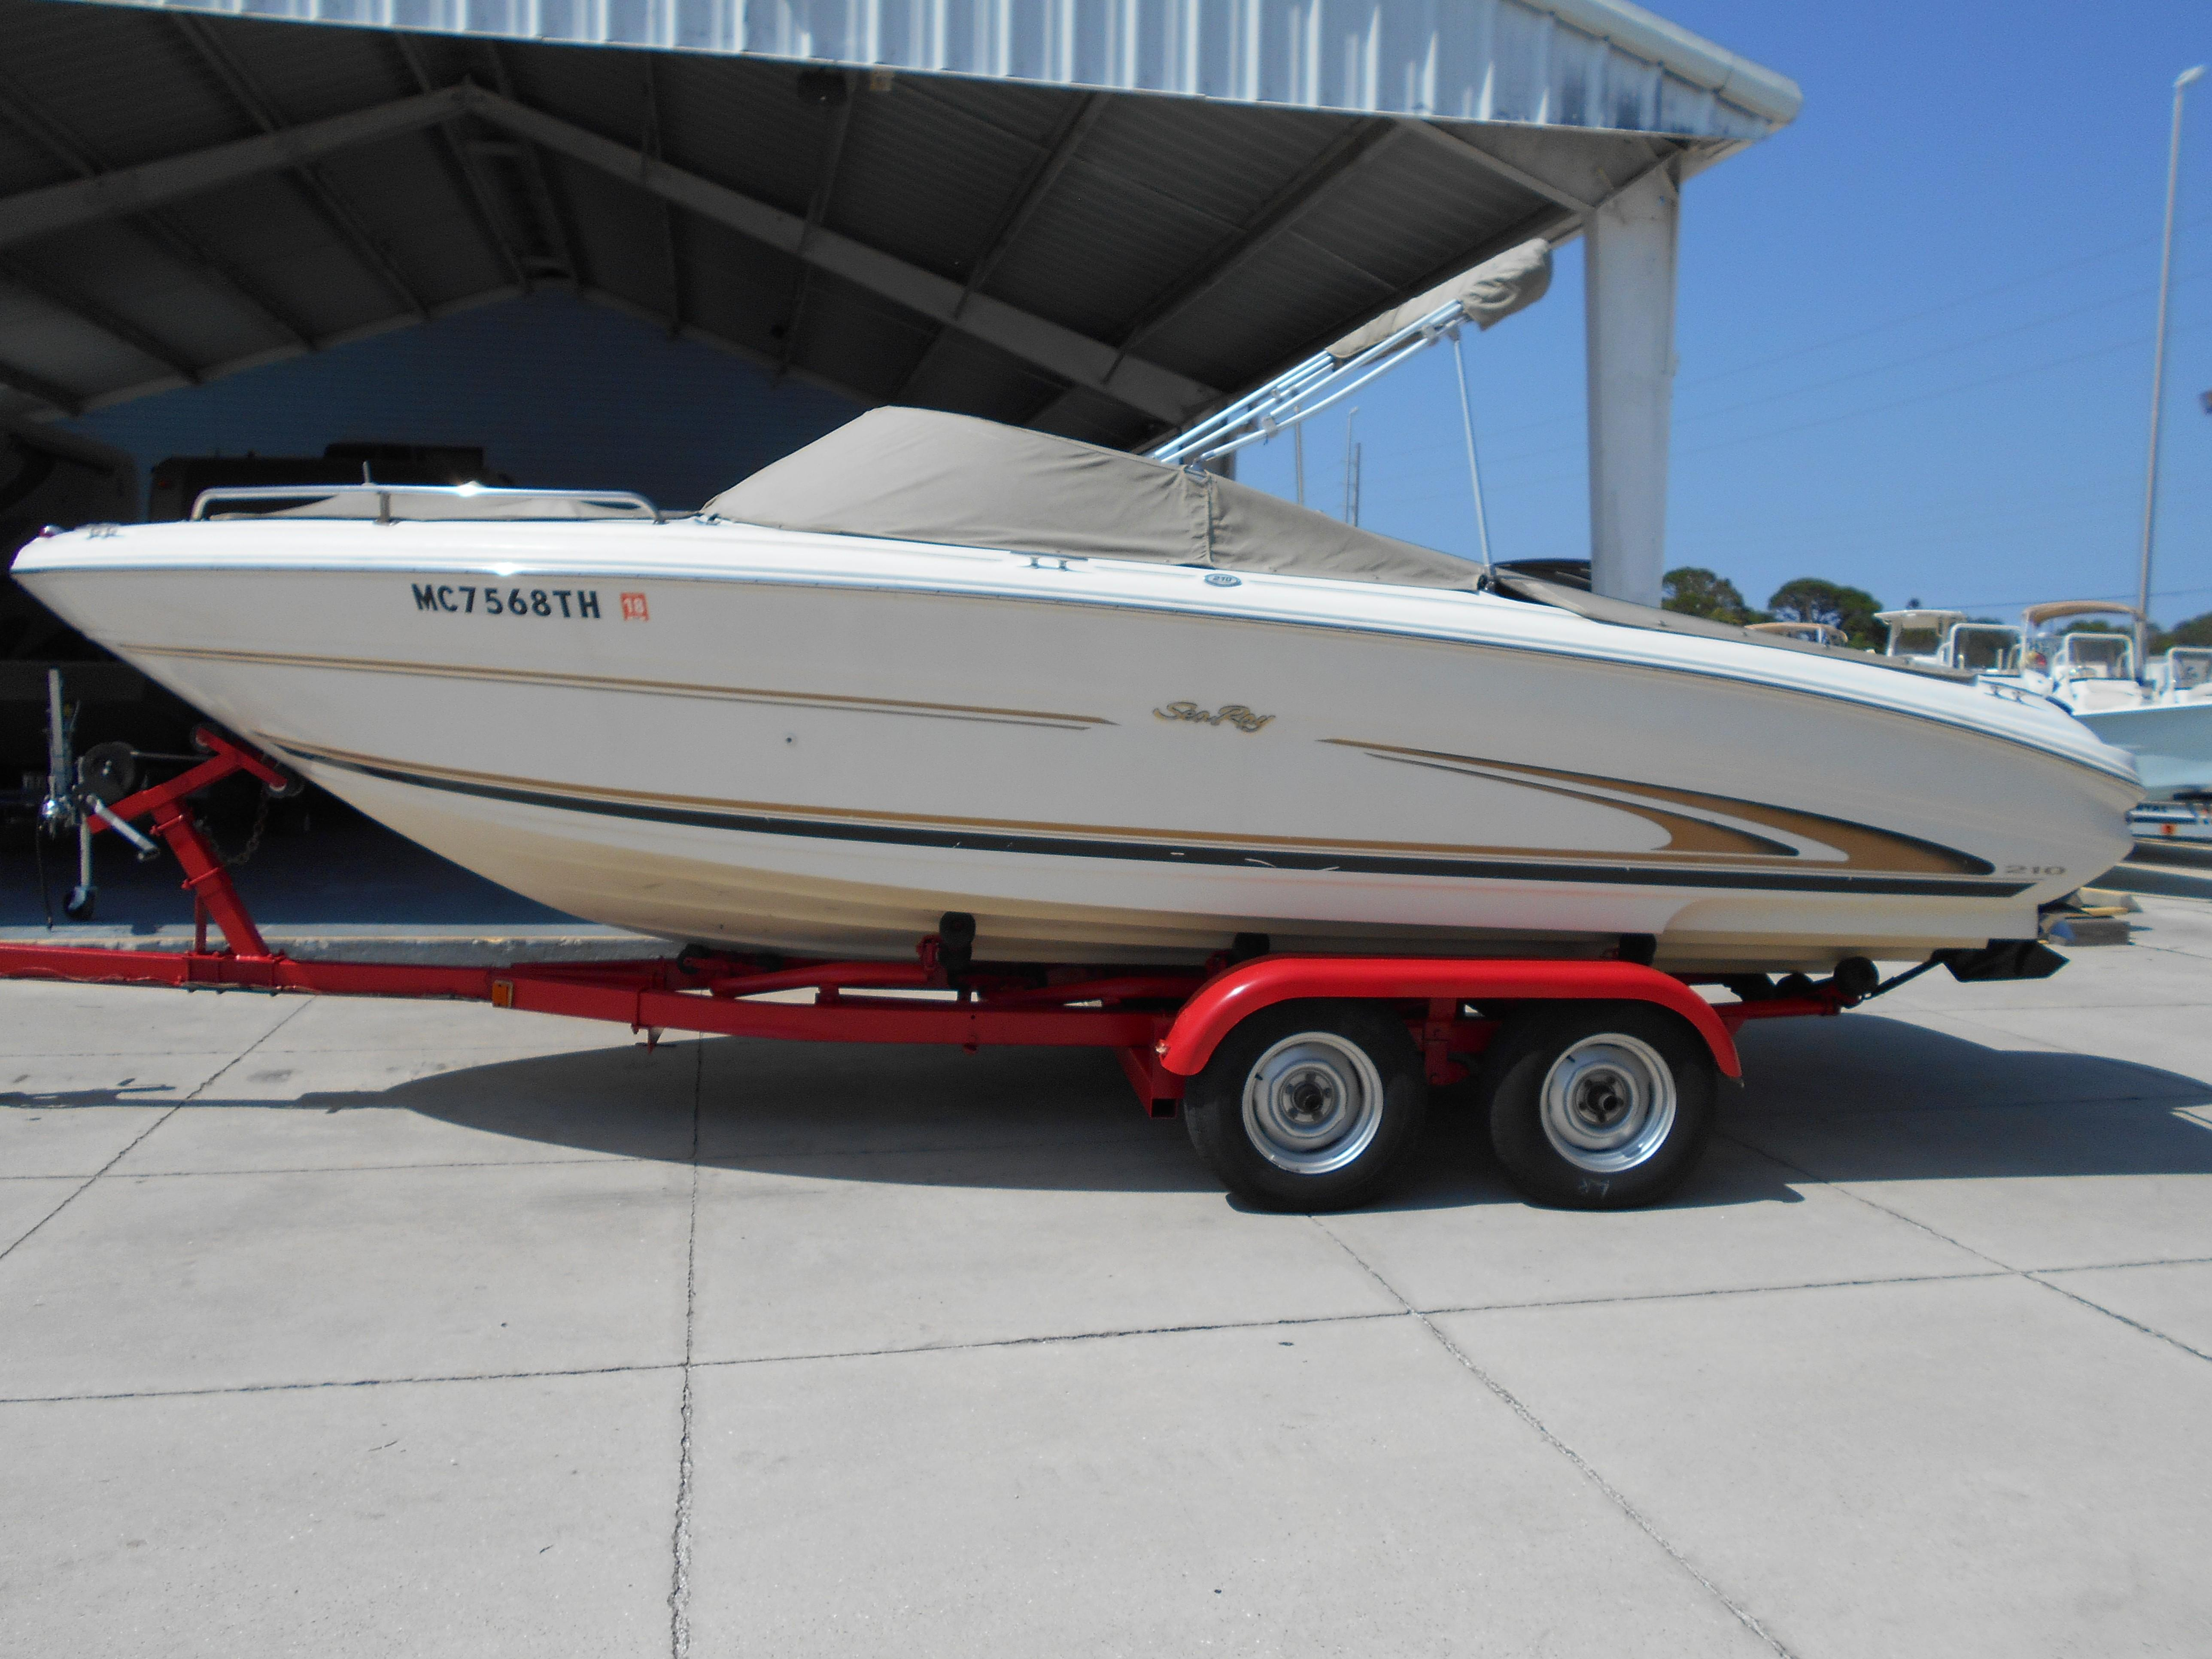 sea ray warranty dta s40 pro wiring diagram 2001 210 bow rider power boat for sale www